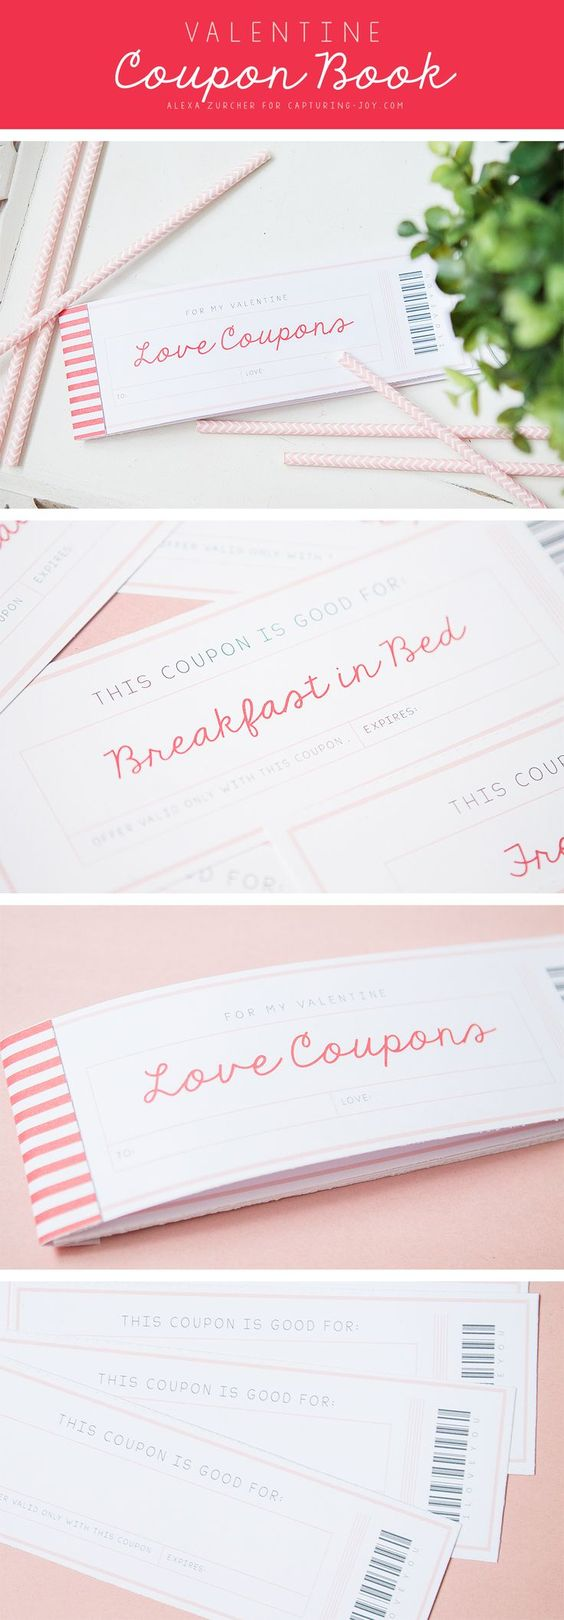 Quick and Easy FREE Printables - Valentine's Day Gift Coupon Book via Capturing Joy with Kristen Duke #valentines #freeprintablevalentines #valentinesprintables #freevalentinesdaycards #valentinesdaypartyprintables #valentinesdayparty